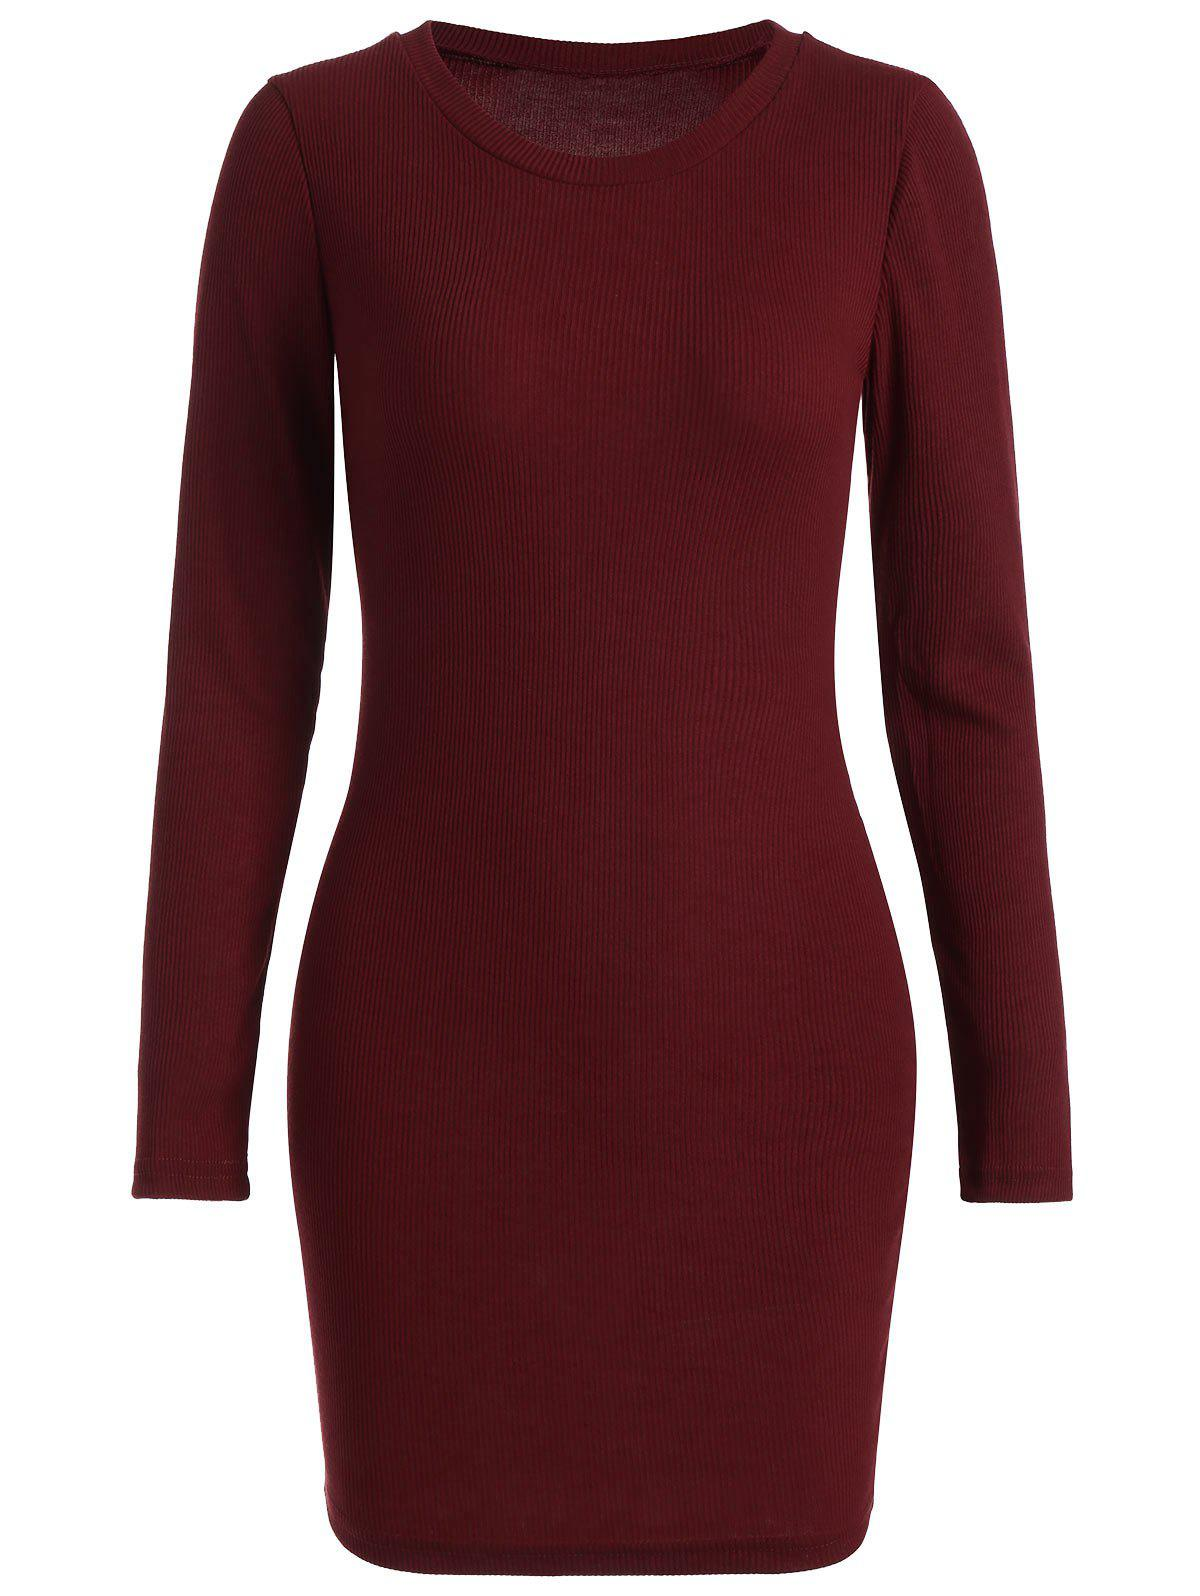 Ribbed Mini Bodycon Knitted Dress - WINE RED XL